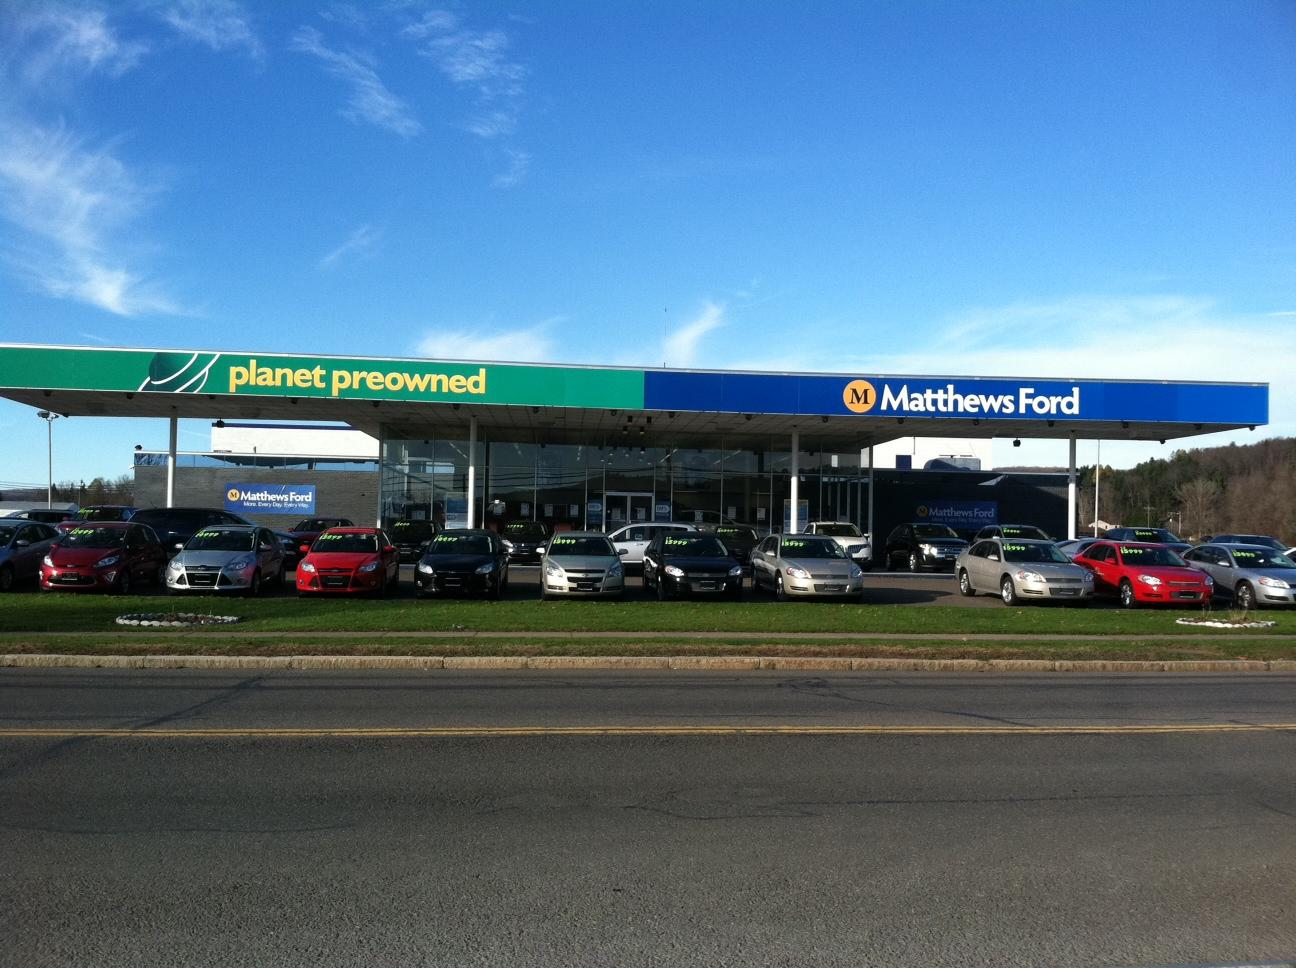 Matthews Planet Preowned >> Matthews Ford Planet PreOwned in Norwich, NY | Whitepages